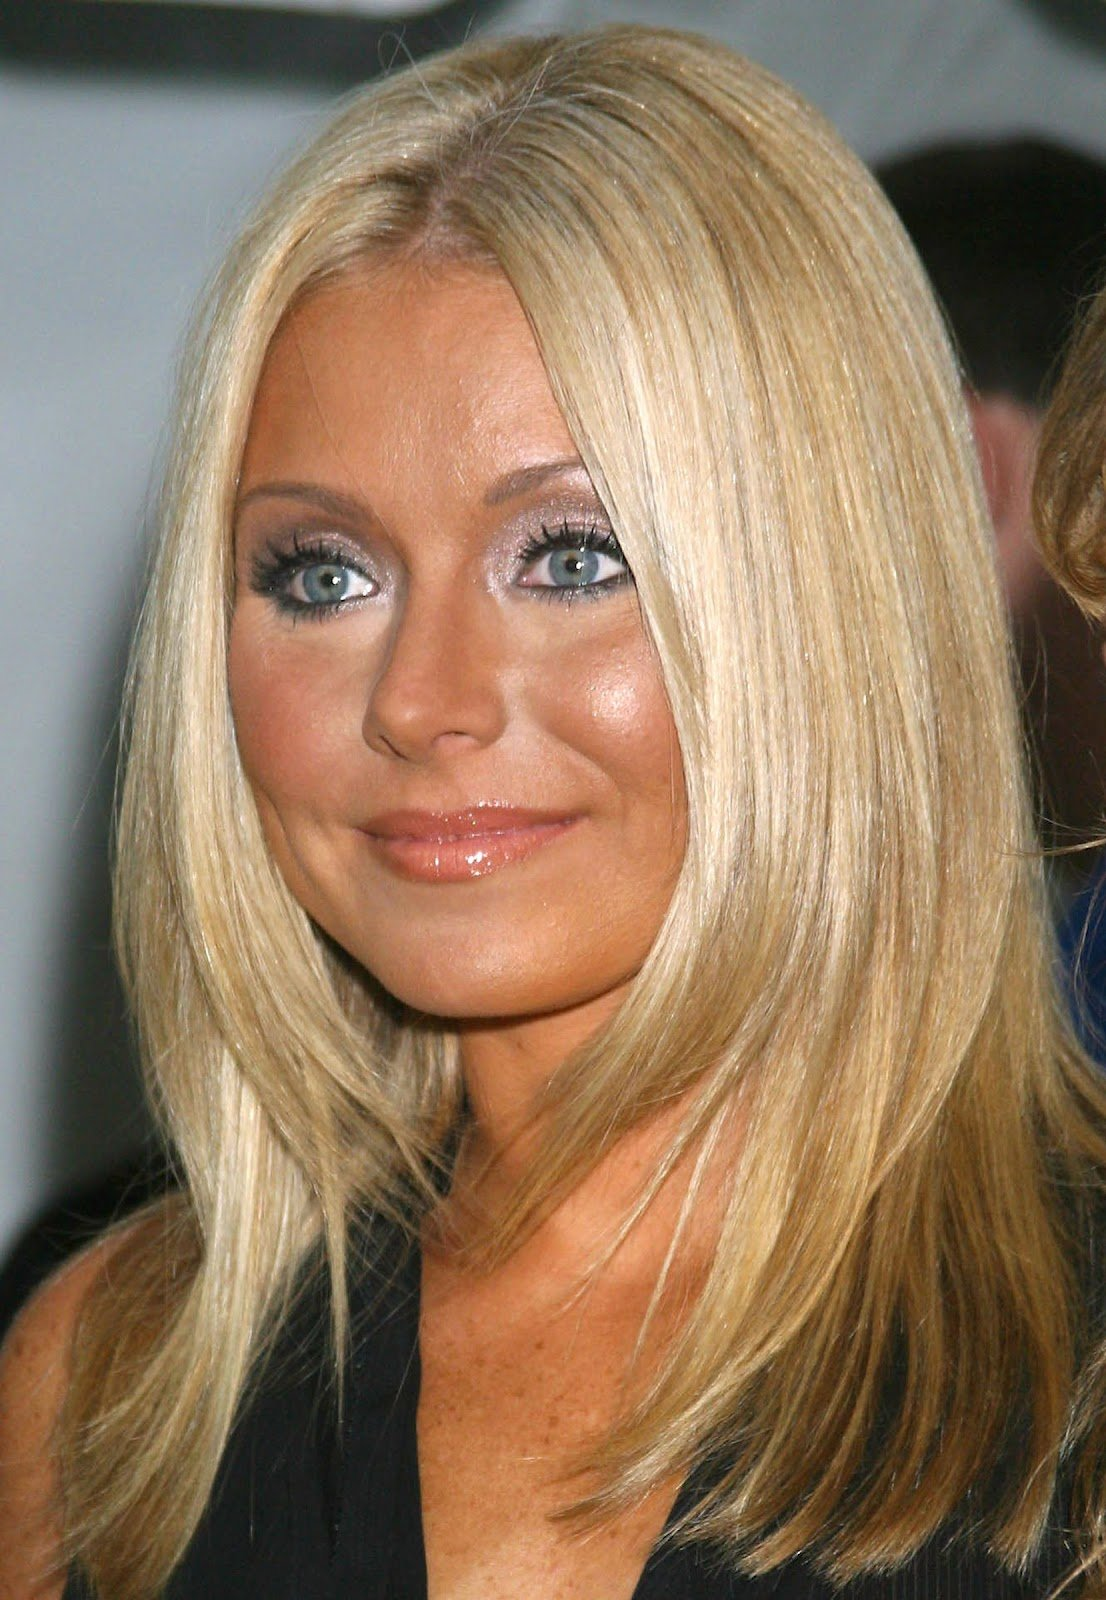 The Best Damon Cool Picture Kelly Ripa Cuts Her Hair Beauty Pictures